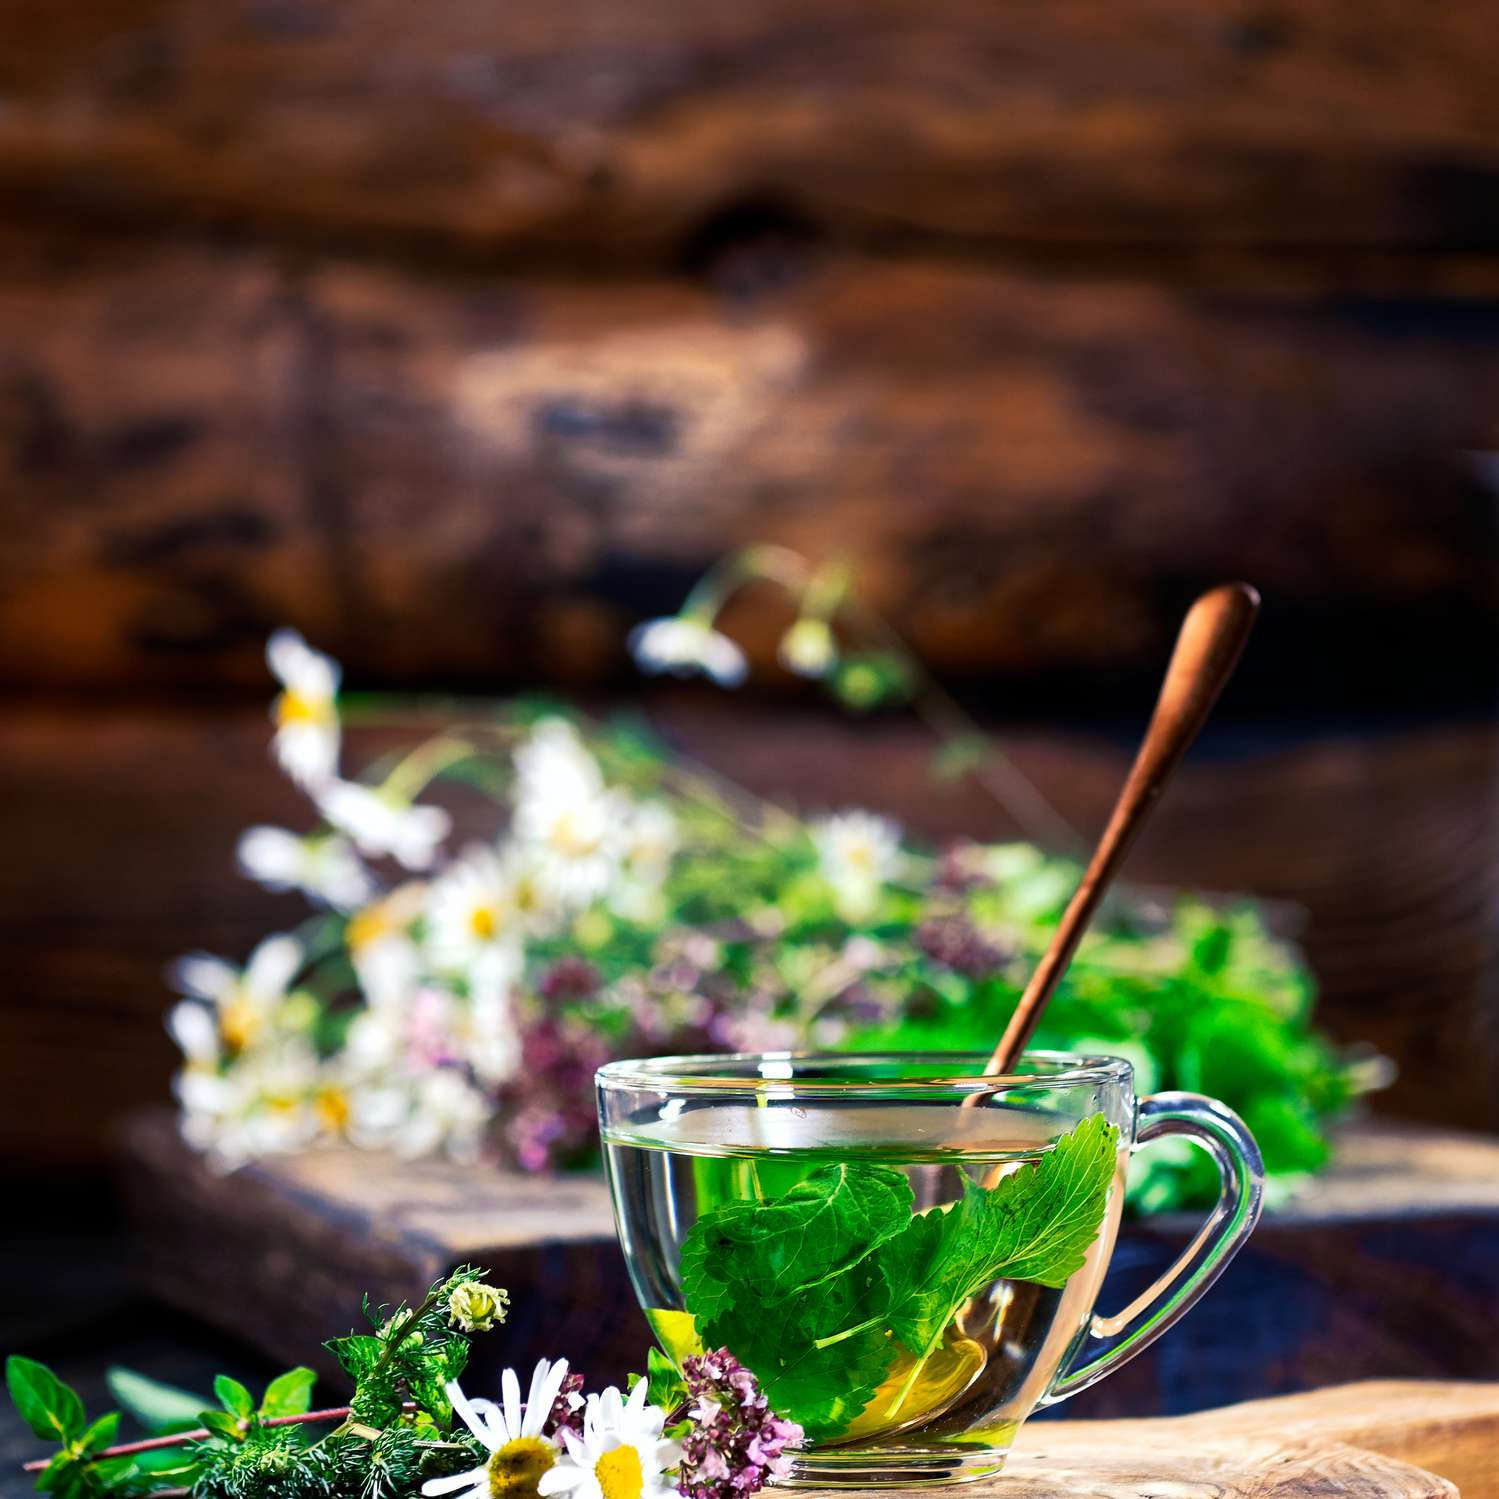 fresh herbs and flowers in clear glass teacup on wood cutting board